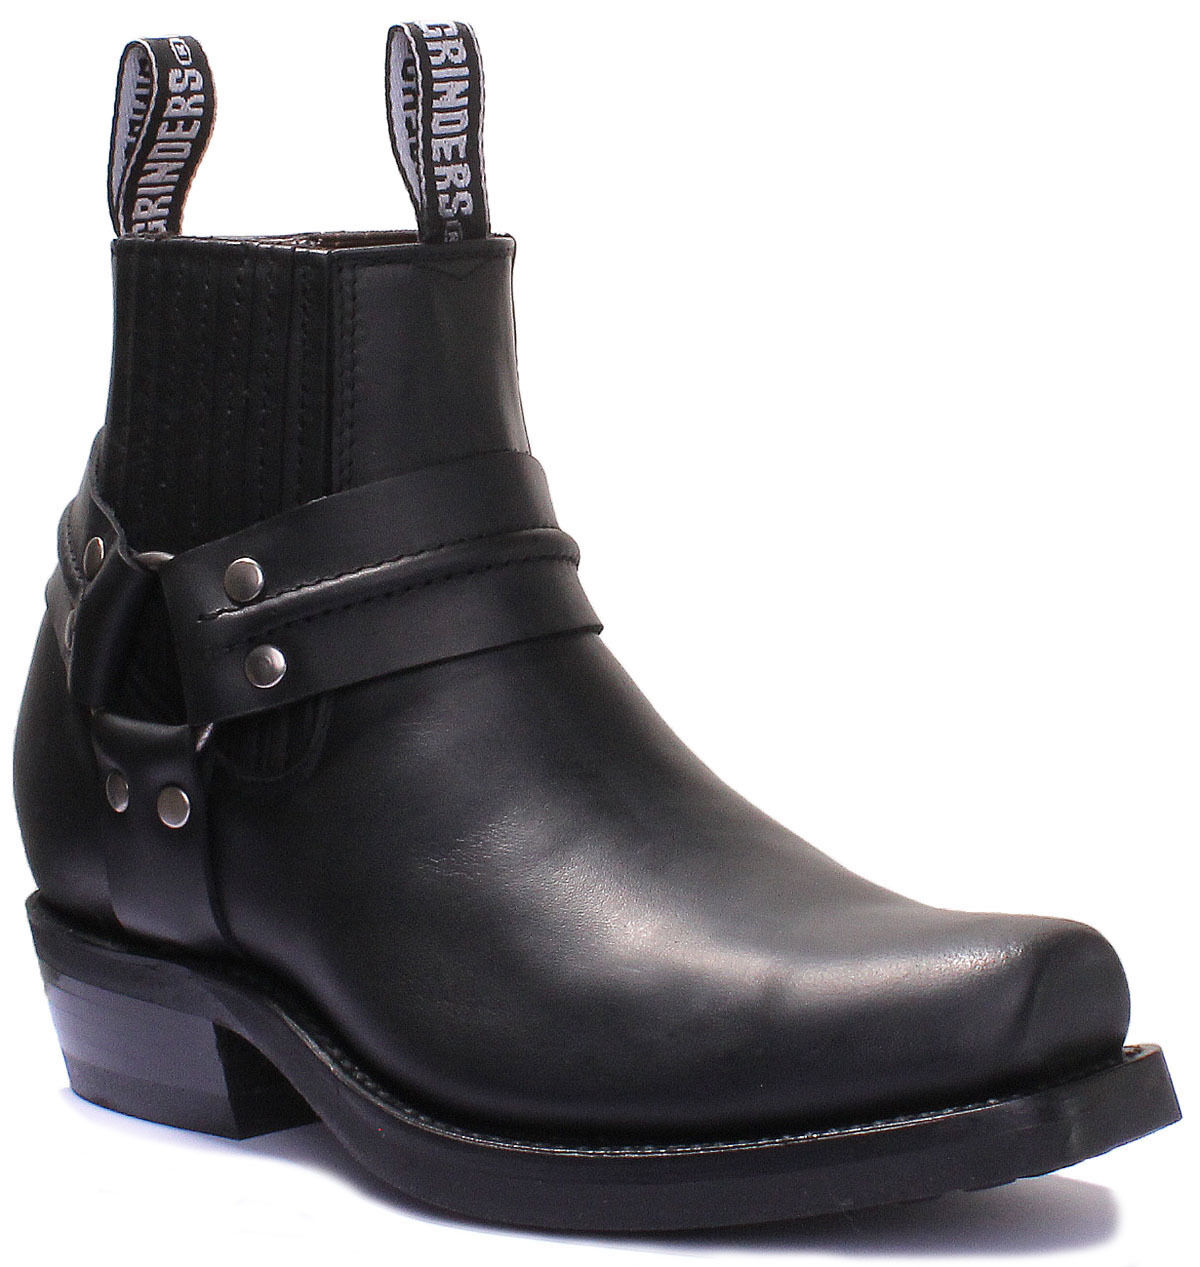 Grinders Renegade Low Unisex Leather Matt Cowboy Boots